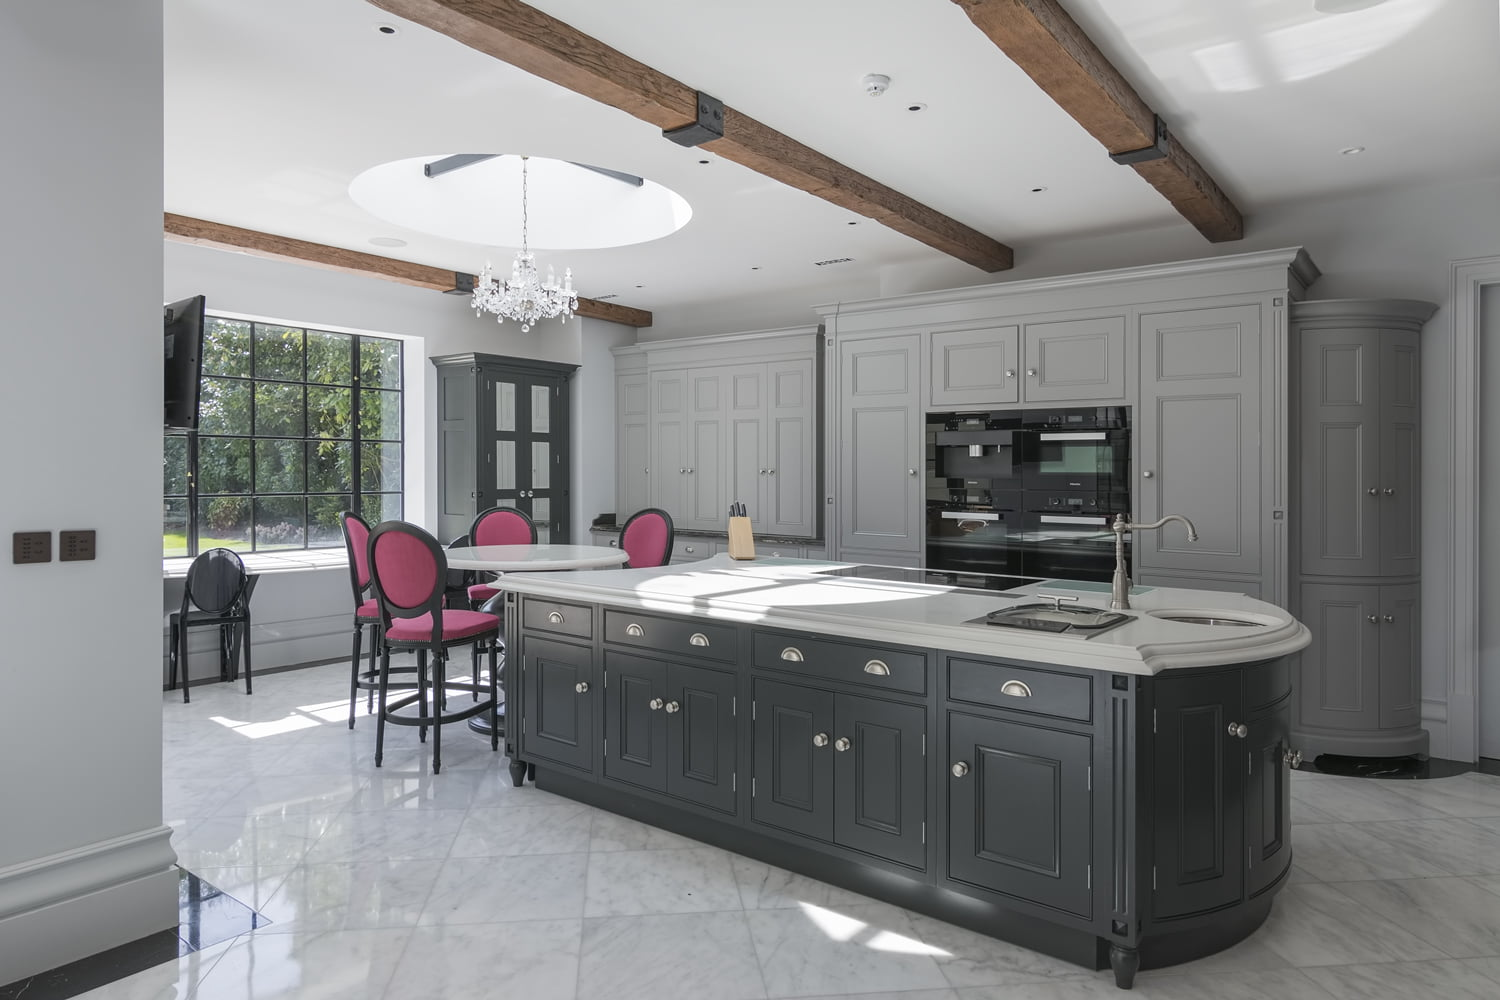 Unique Handmade  Bespoke Kitchens From SA Designs Surrey - Kitchen designs sa